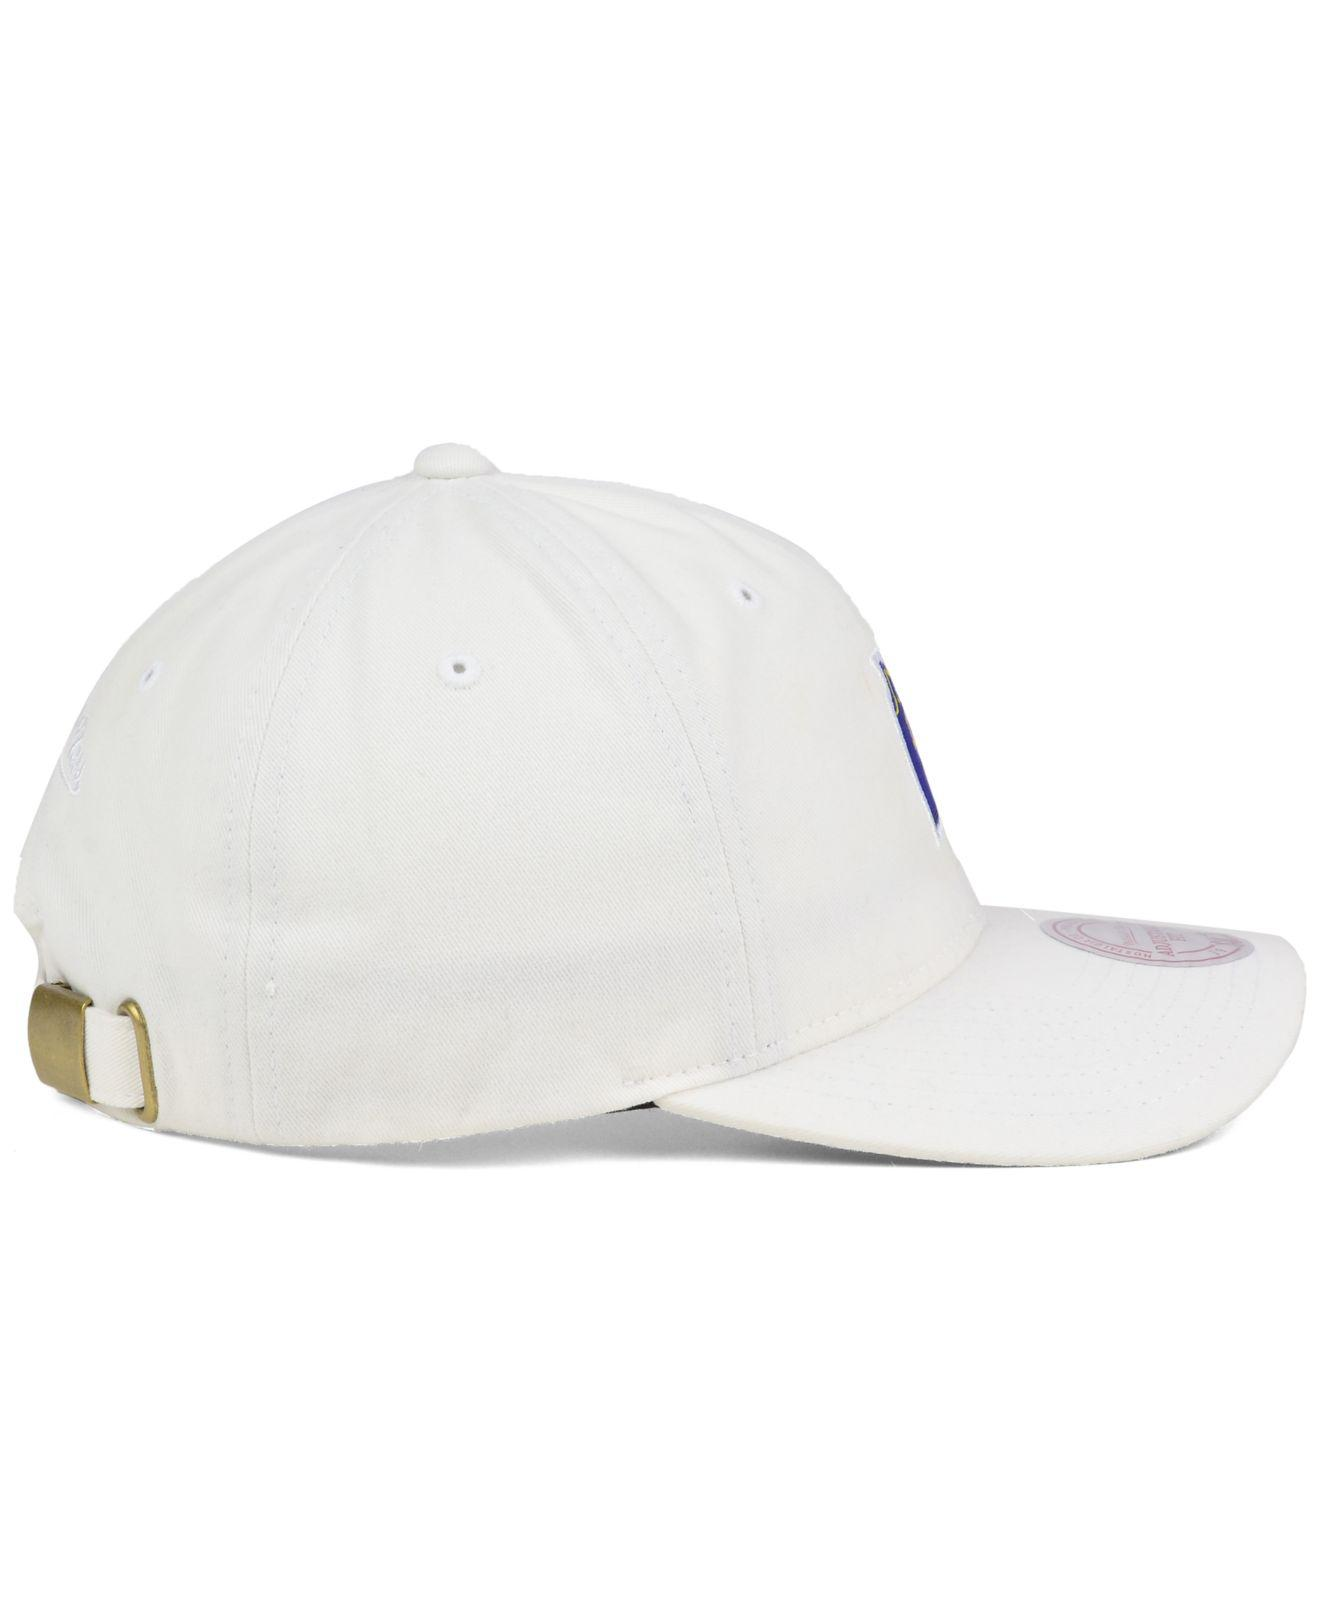 cheaper 5ad3d de5ac ... promo code for mitchell ness white deez jersey dad cap for men lyst.  view fullscreen